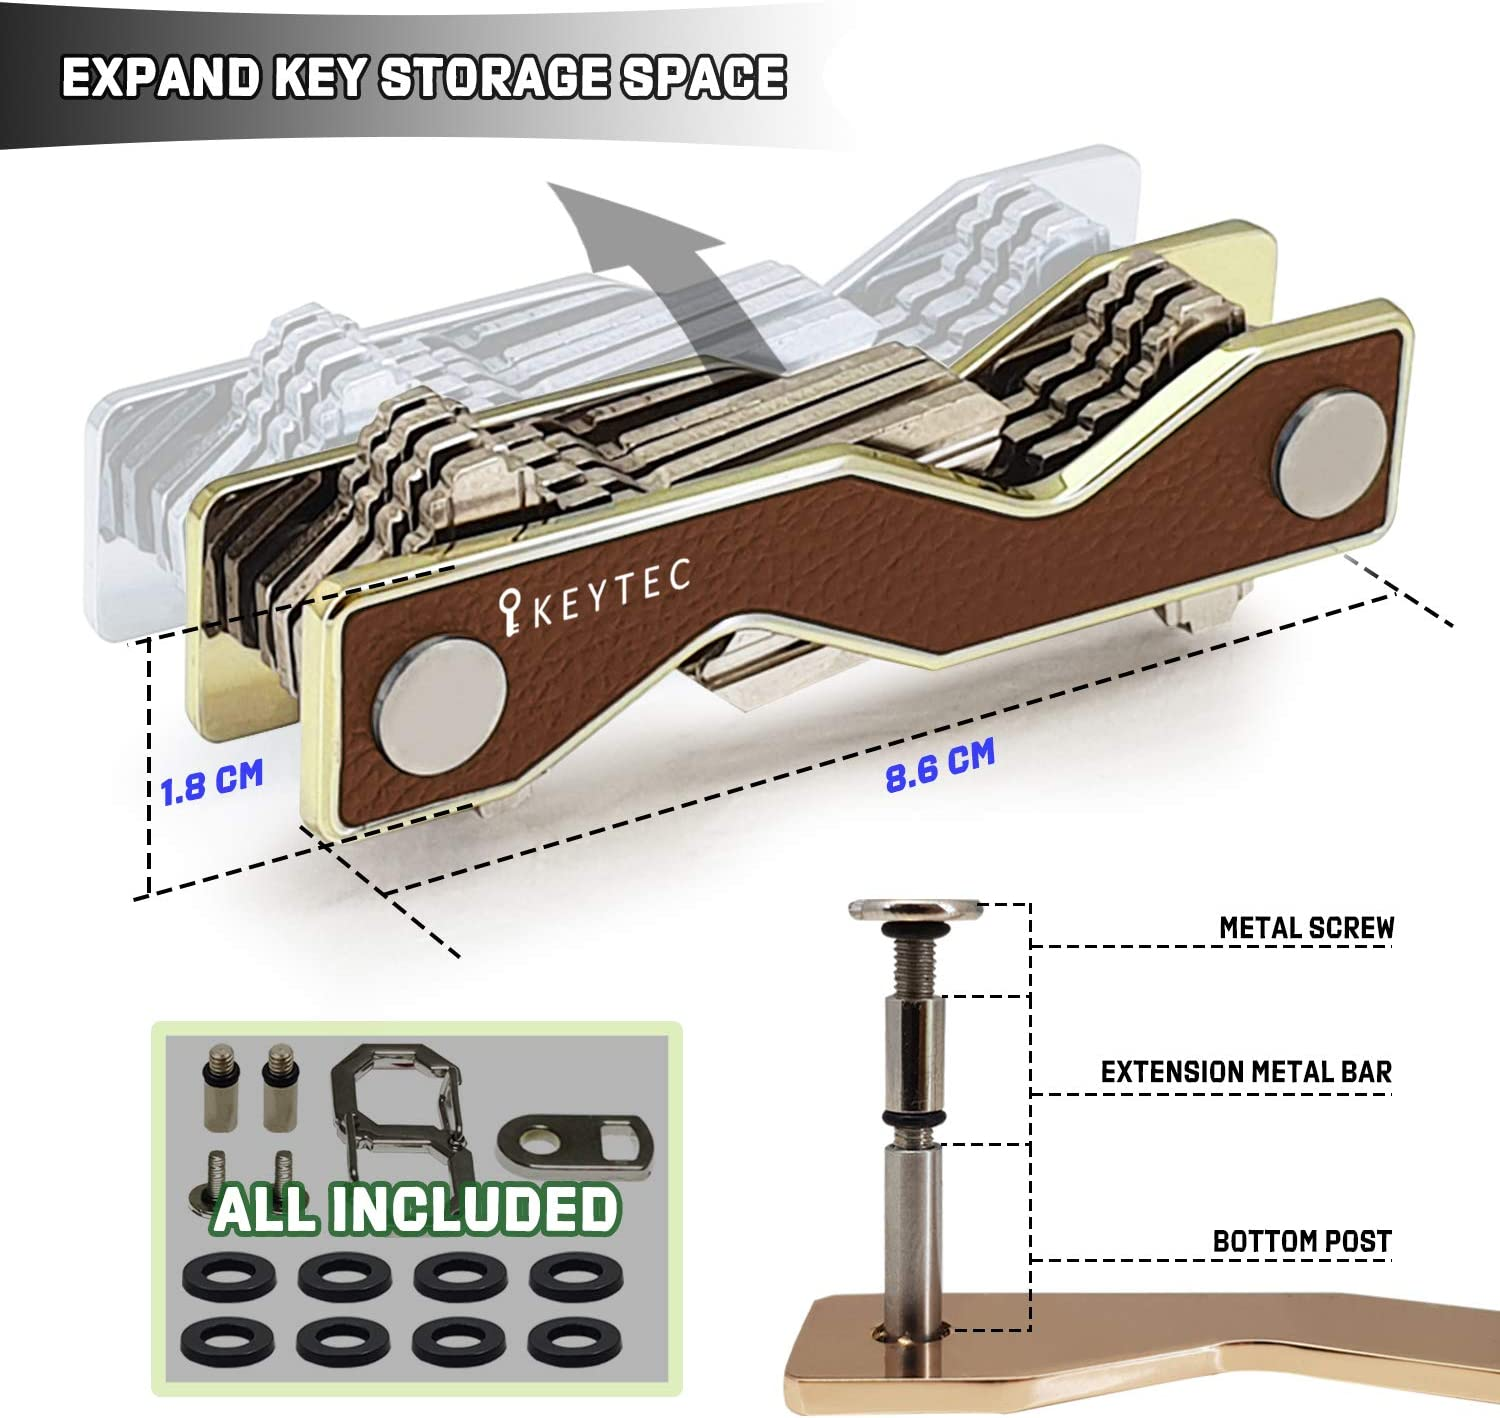 Compact Key Organizer Smart Key Holder by KEYTEC Leather Silver Rim Multitool Includes Bottle Opener Comb S-Clip Hook Expansion Accessory Enhanced Frame